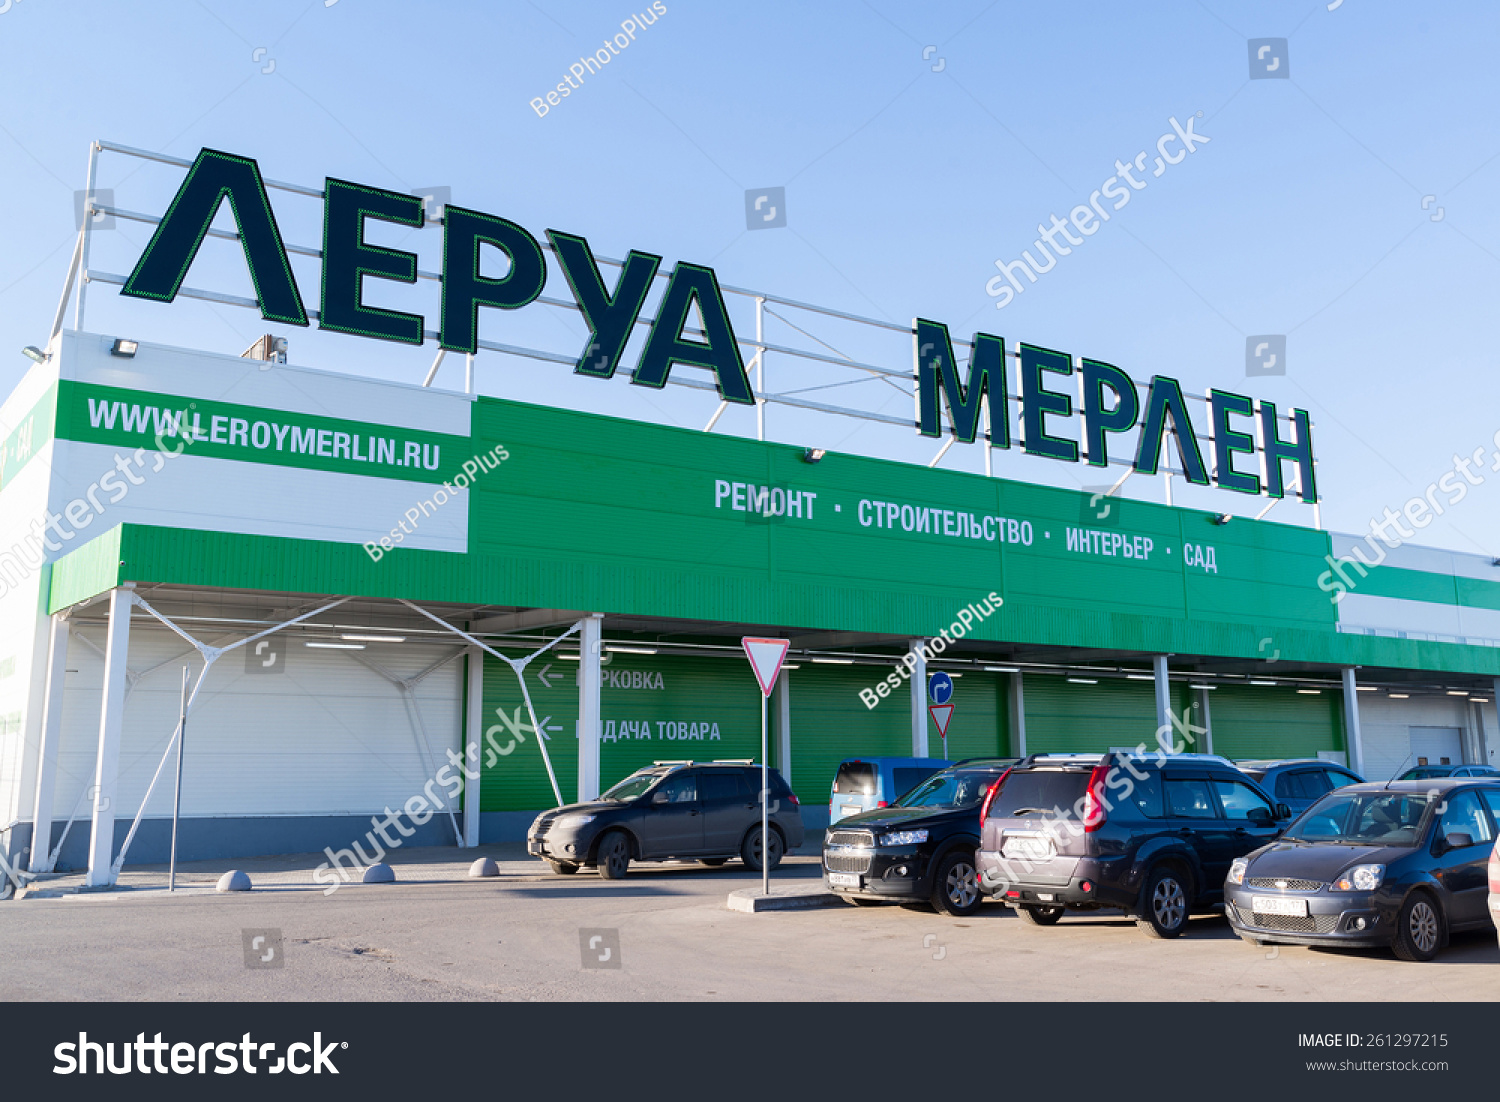 Leroy Merlin Orleans Samara Russia March 14 2015 Construction Stock Photo Edit Now